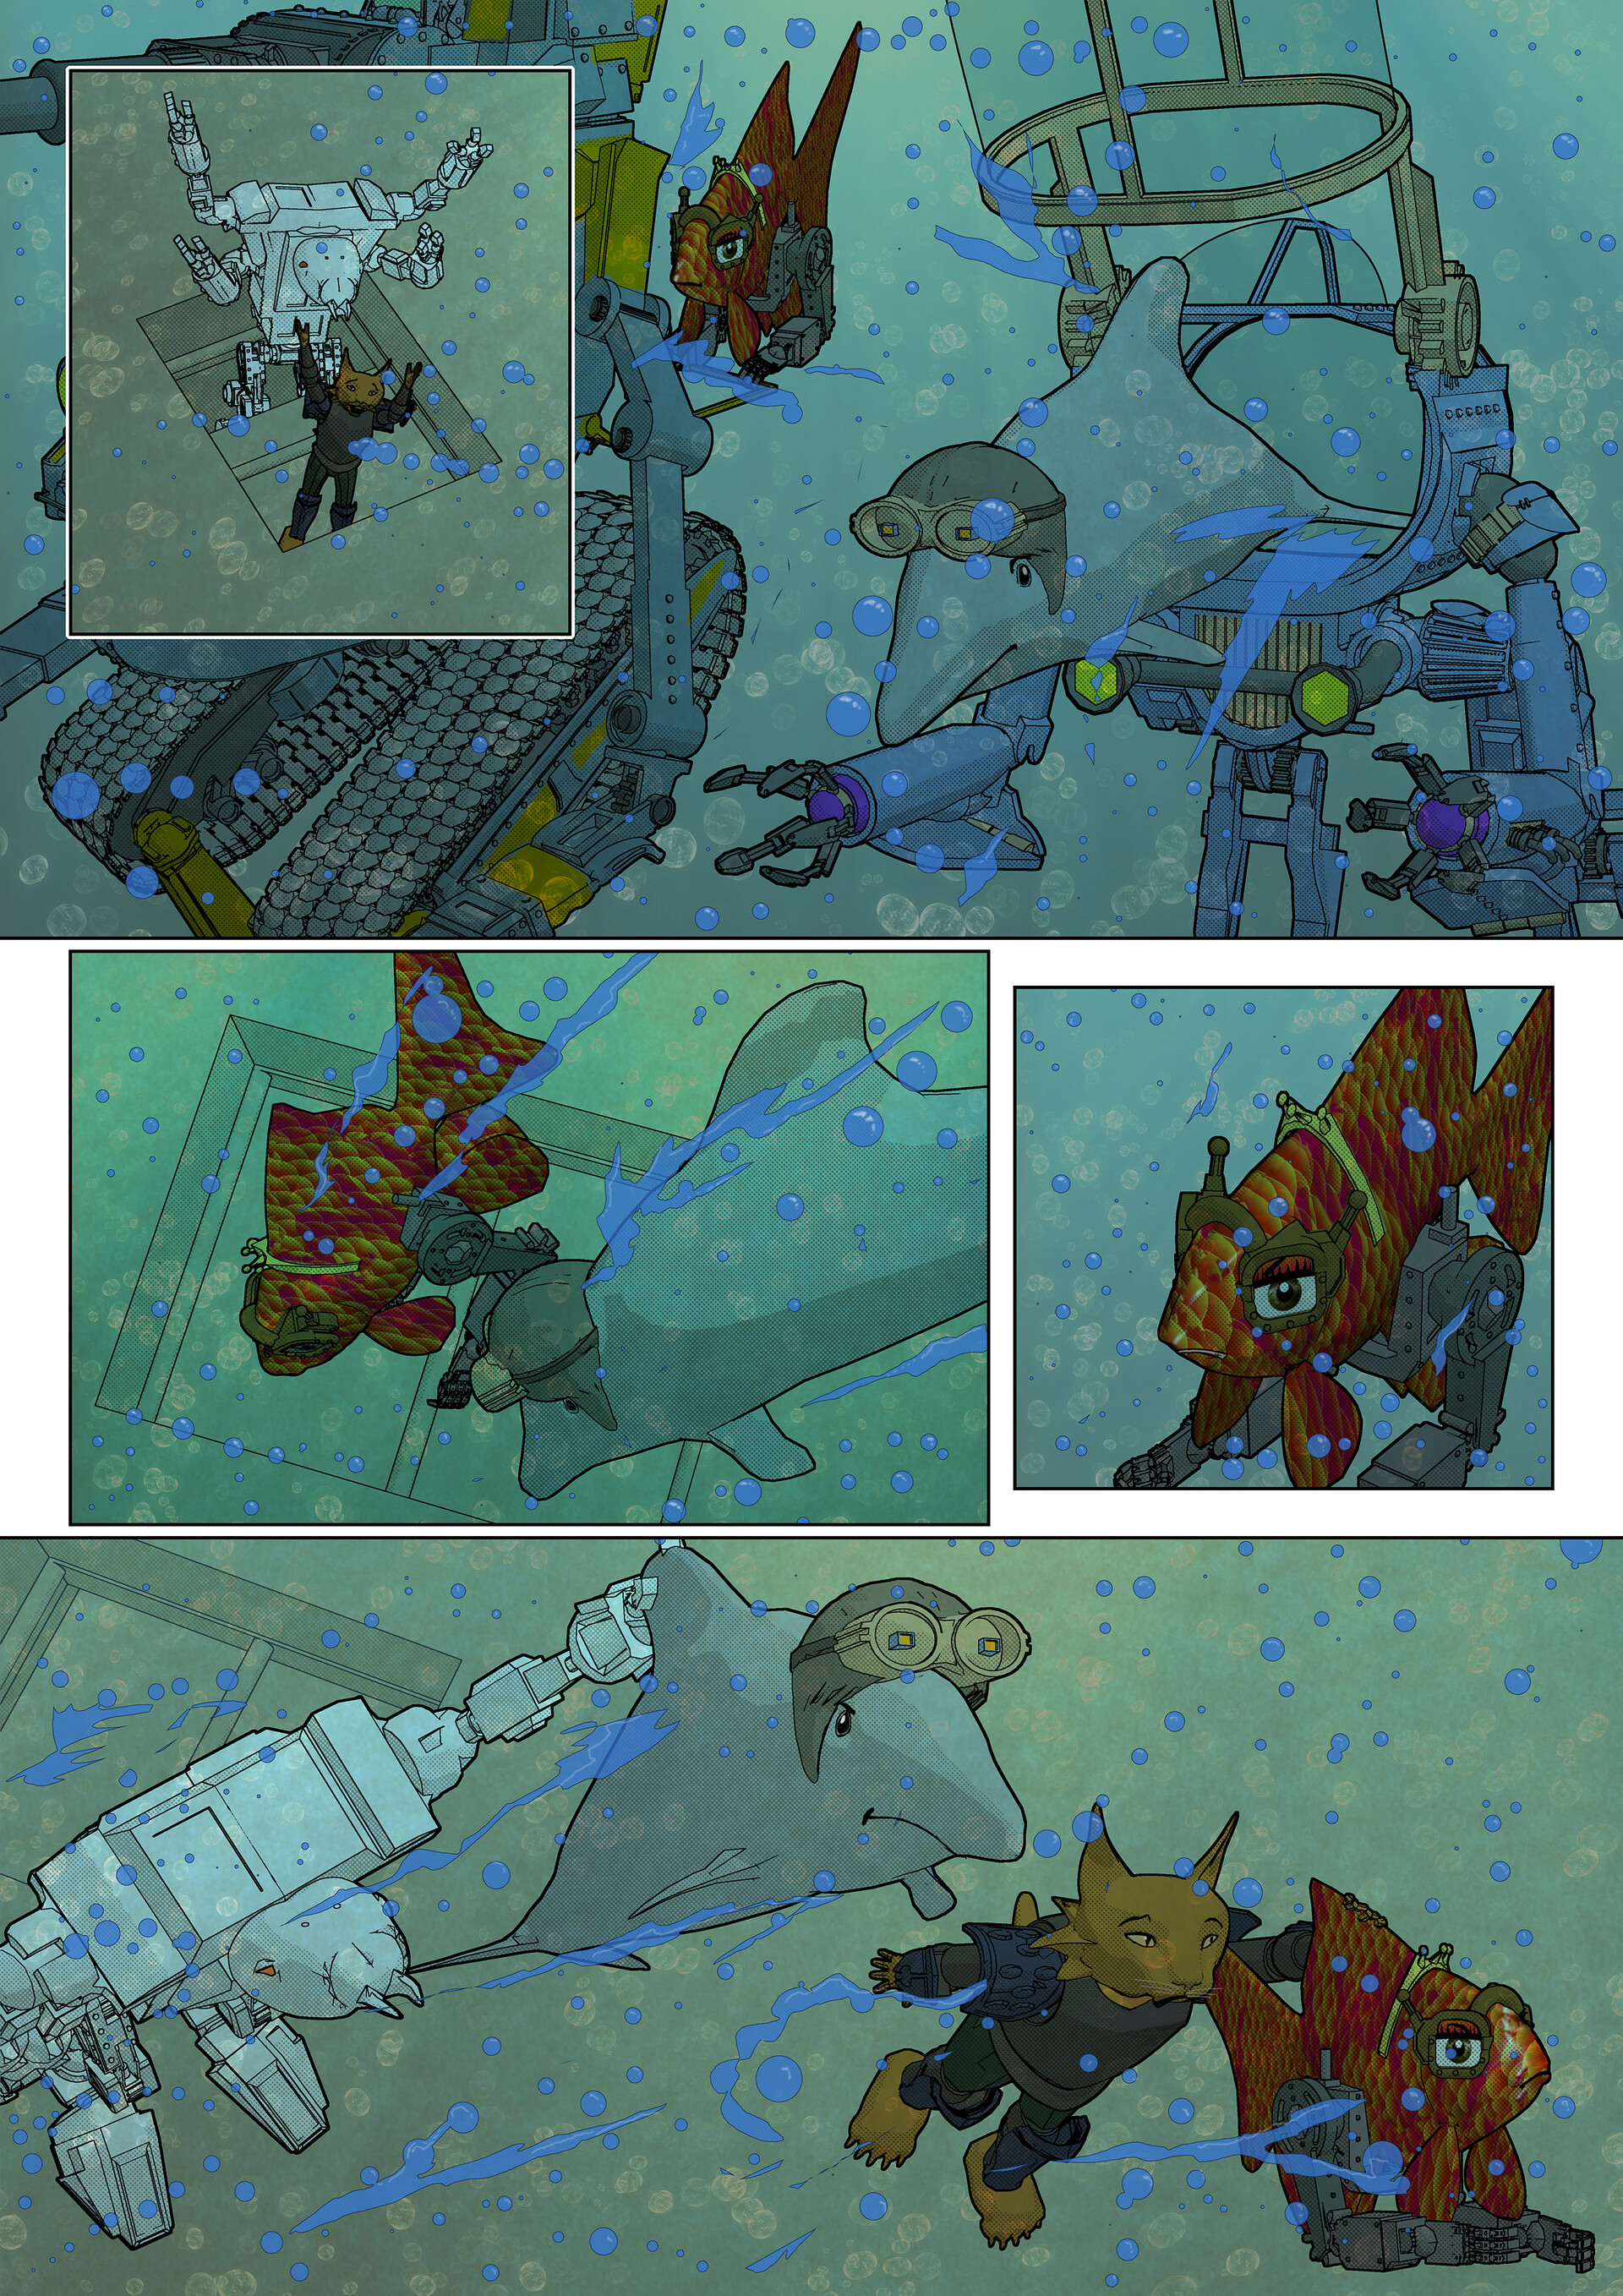 Page 18 from the FishTank & Dolphinarium comic book.